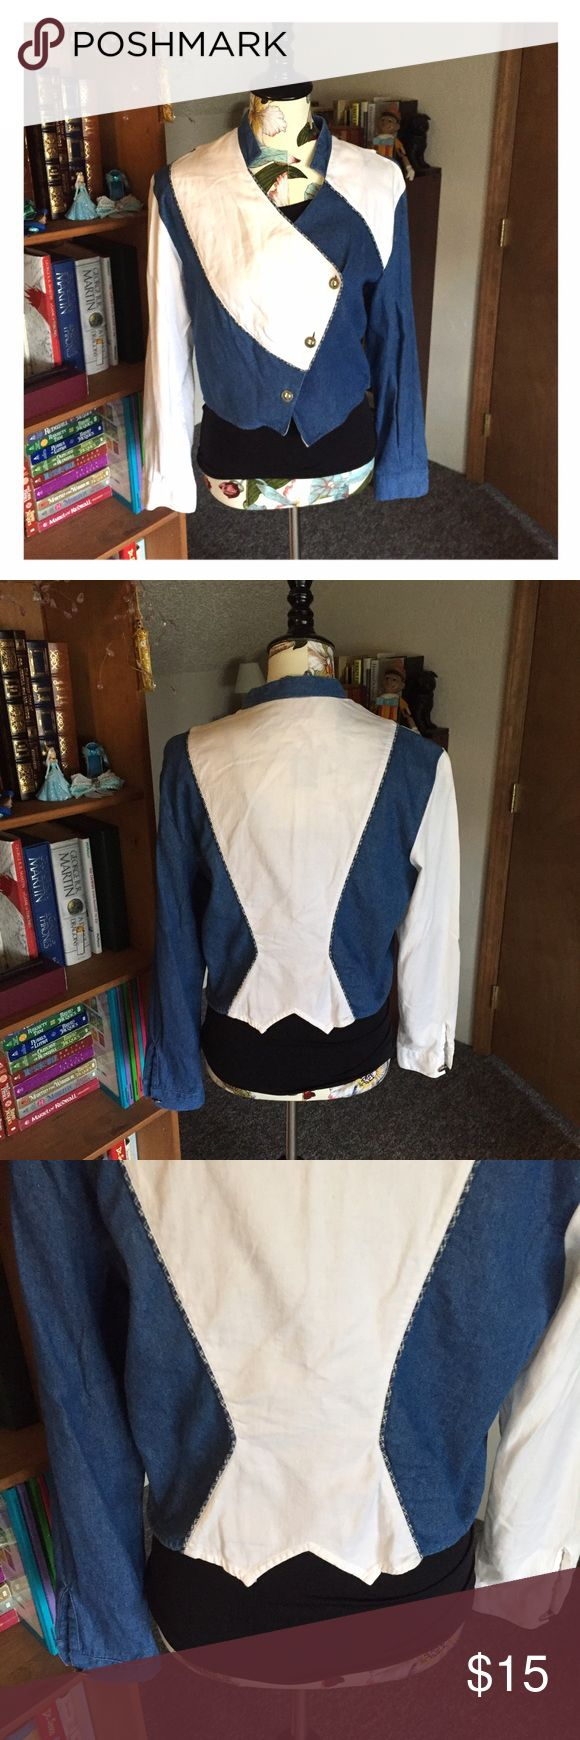 💠New Listing💠 Ozark Mountain-Western Style Shirt 🌸EUC! Very fun asymmetrical western style top. Has military style buttons on the front. Could easily be worn as a jacket.🌸💸Free Shipping on bundles with three or more items. After you bundle your three items, make an offer with $6 off the discounted bundled price.💸 Ozark Mountain Tops Button Down Shirts